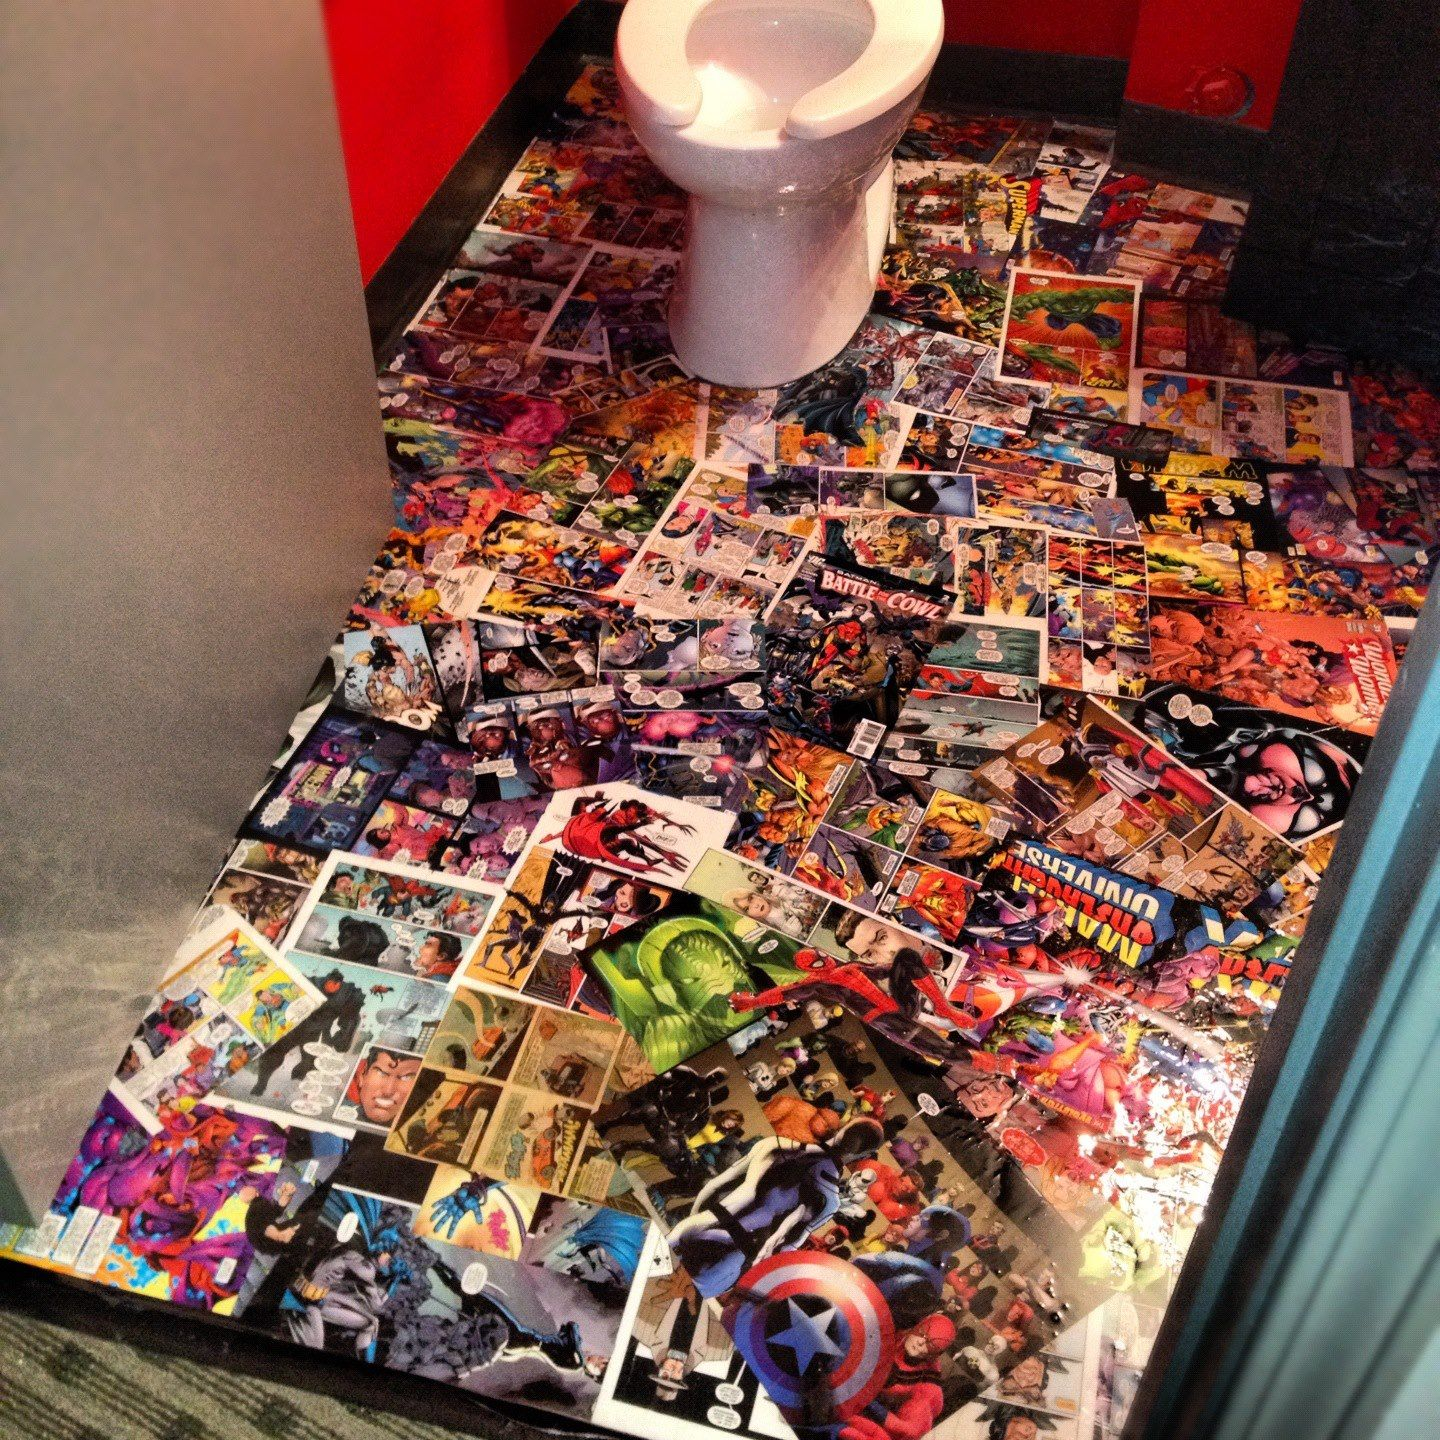 Badezimmer Comic Super Hero Comic Book Floor I Bought 12 Comic Books For